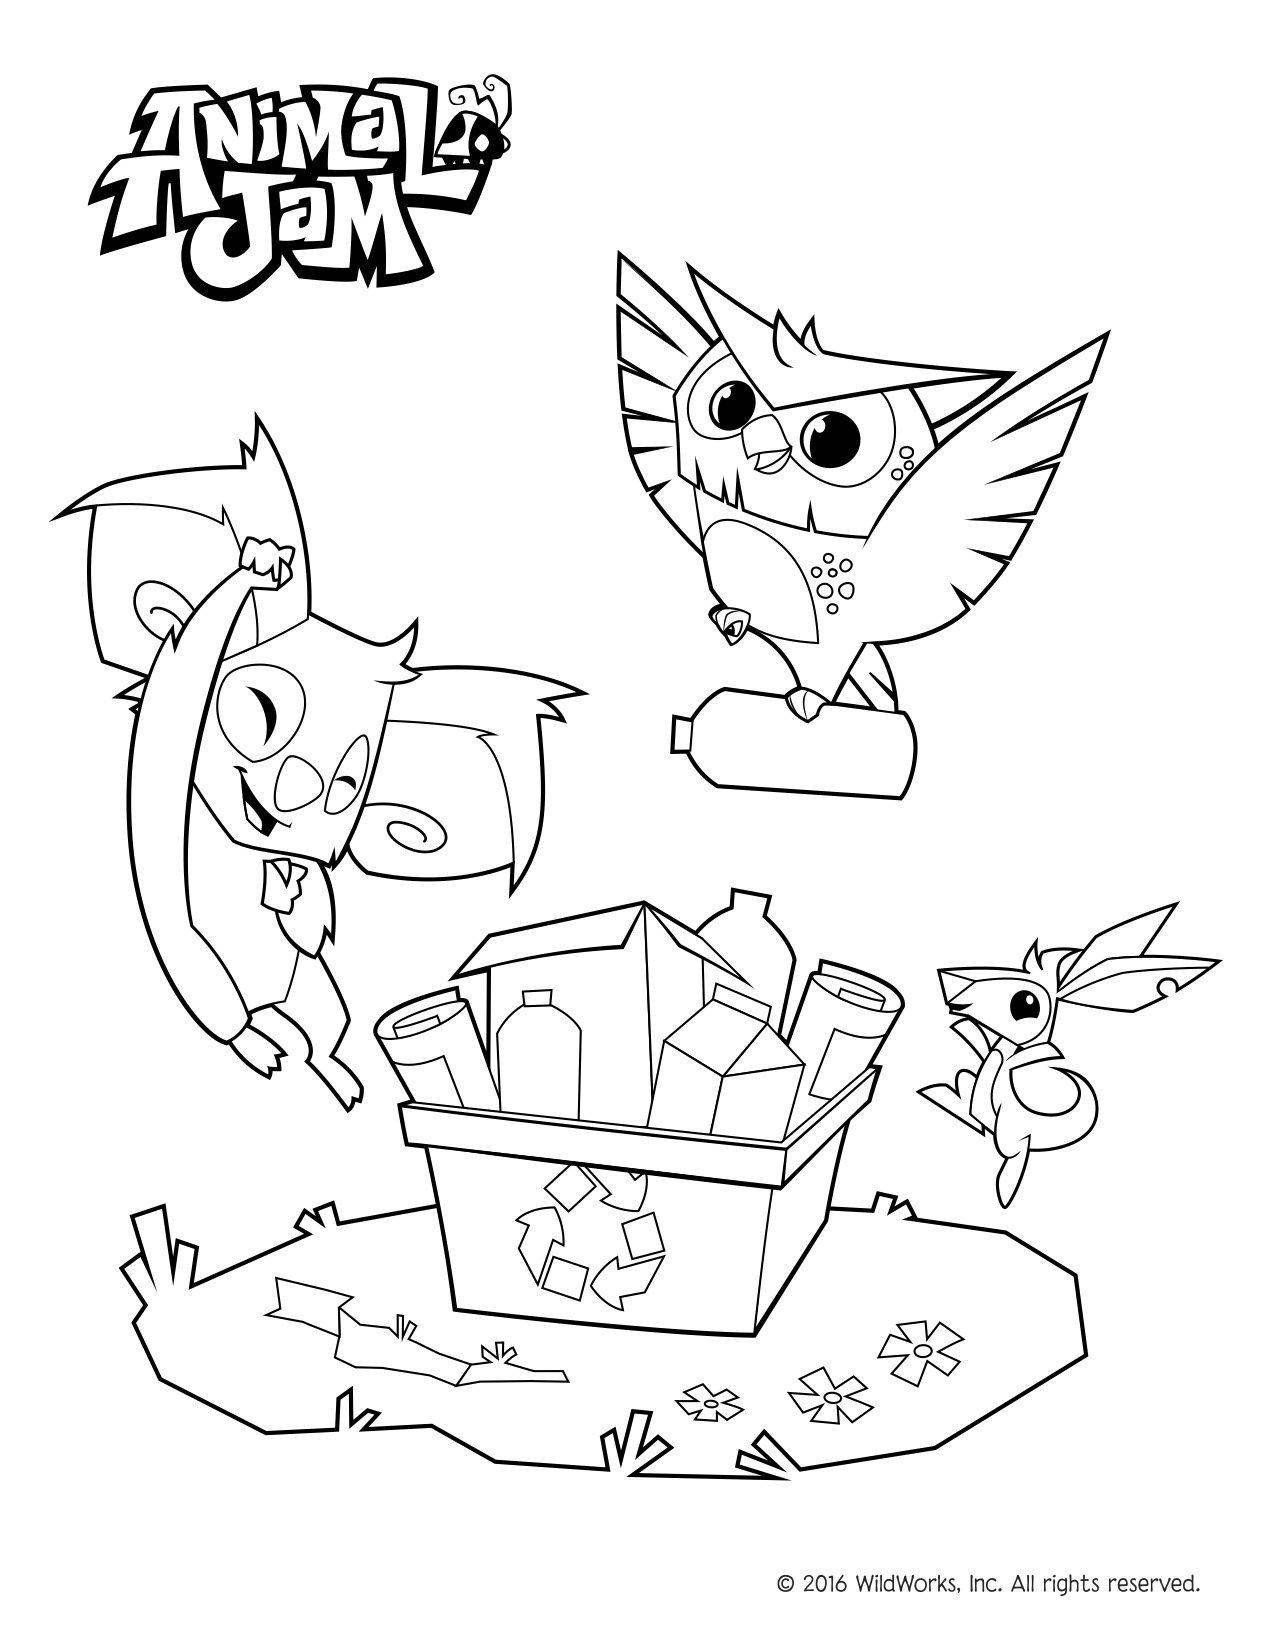 Animal Jam Coloring Pages Fresh Animal Jam Coloring Pages Animal Coloring Pages Birthday Coloring Pages Animal Jam